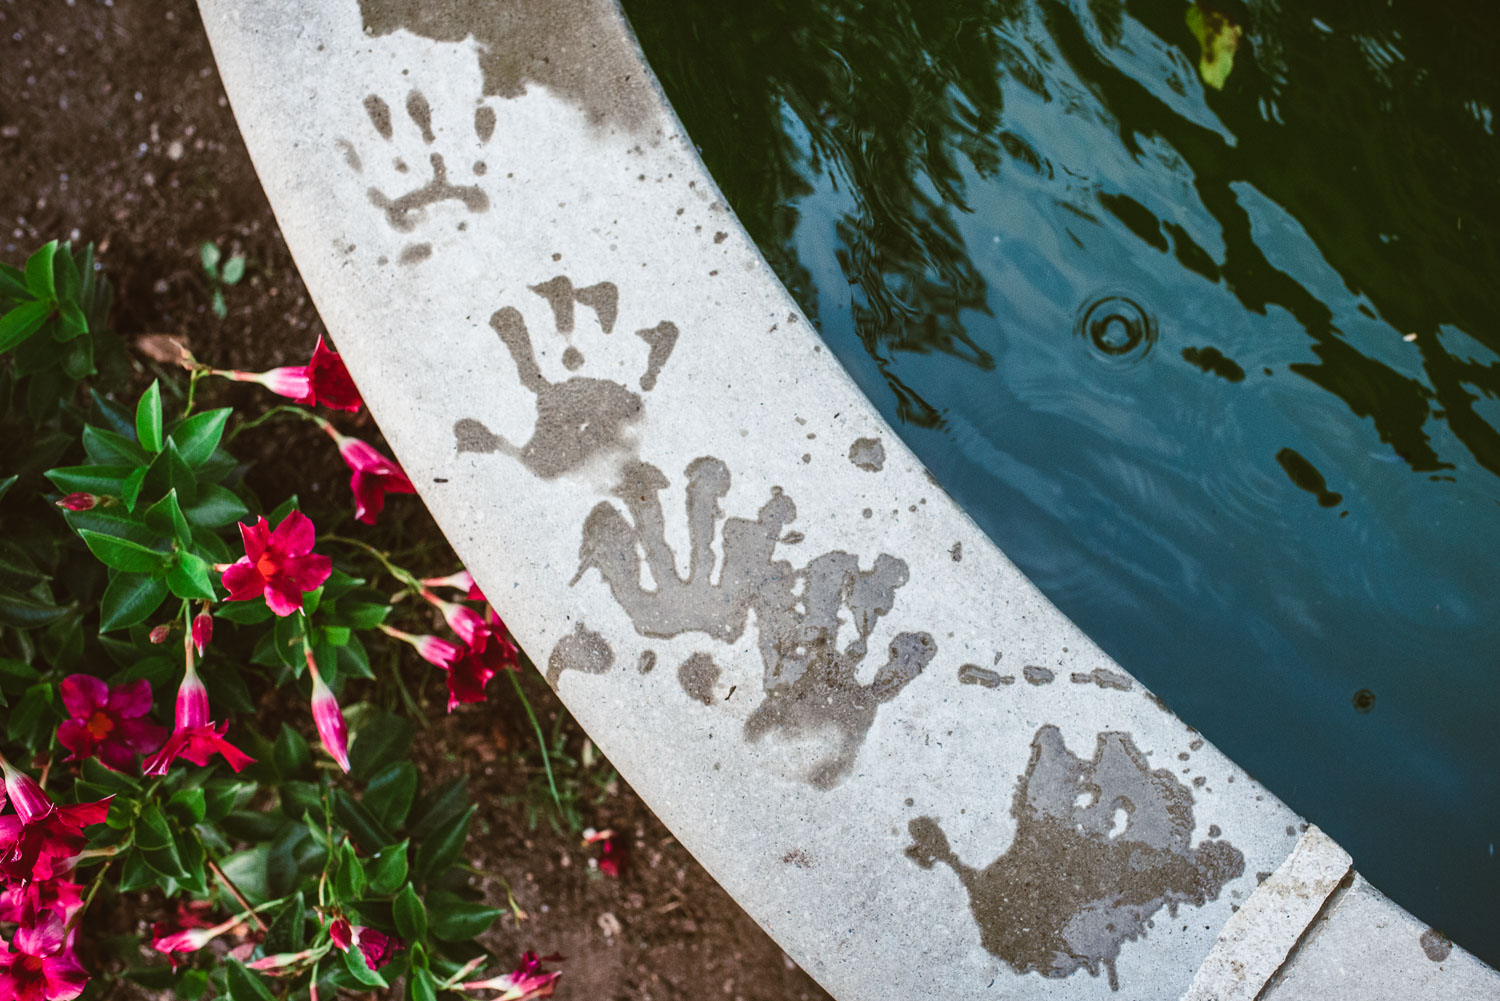 Francesca Russell Photography | Long Island Family Documentary Photography | Handprints on the fountain